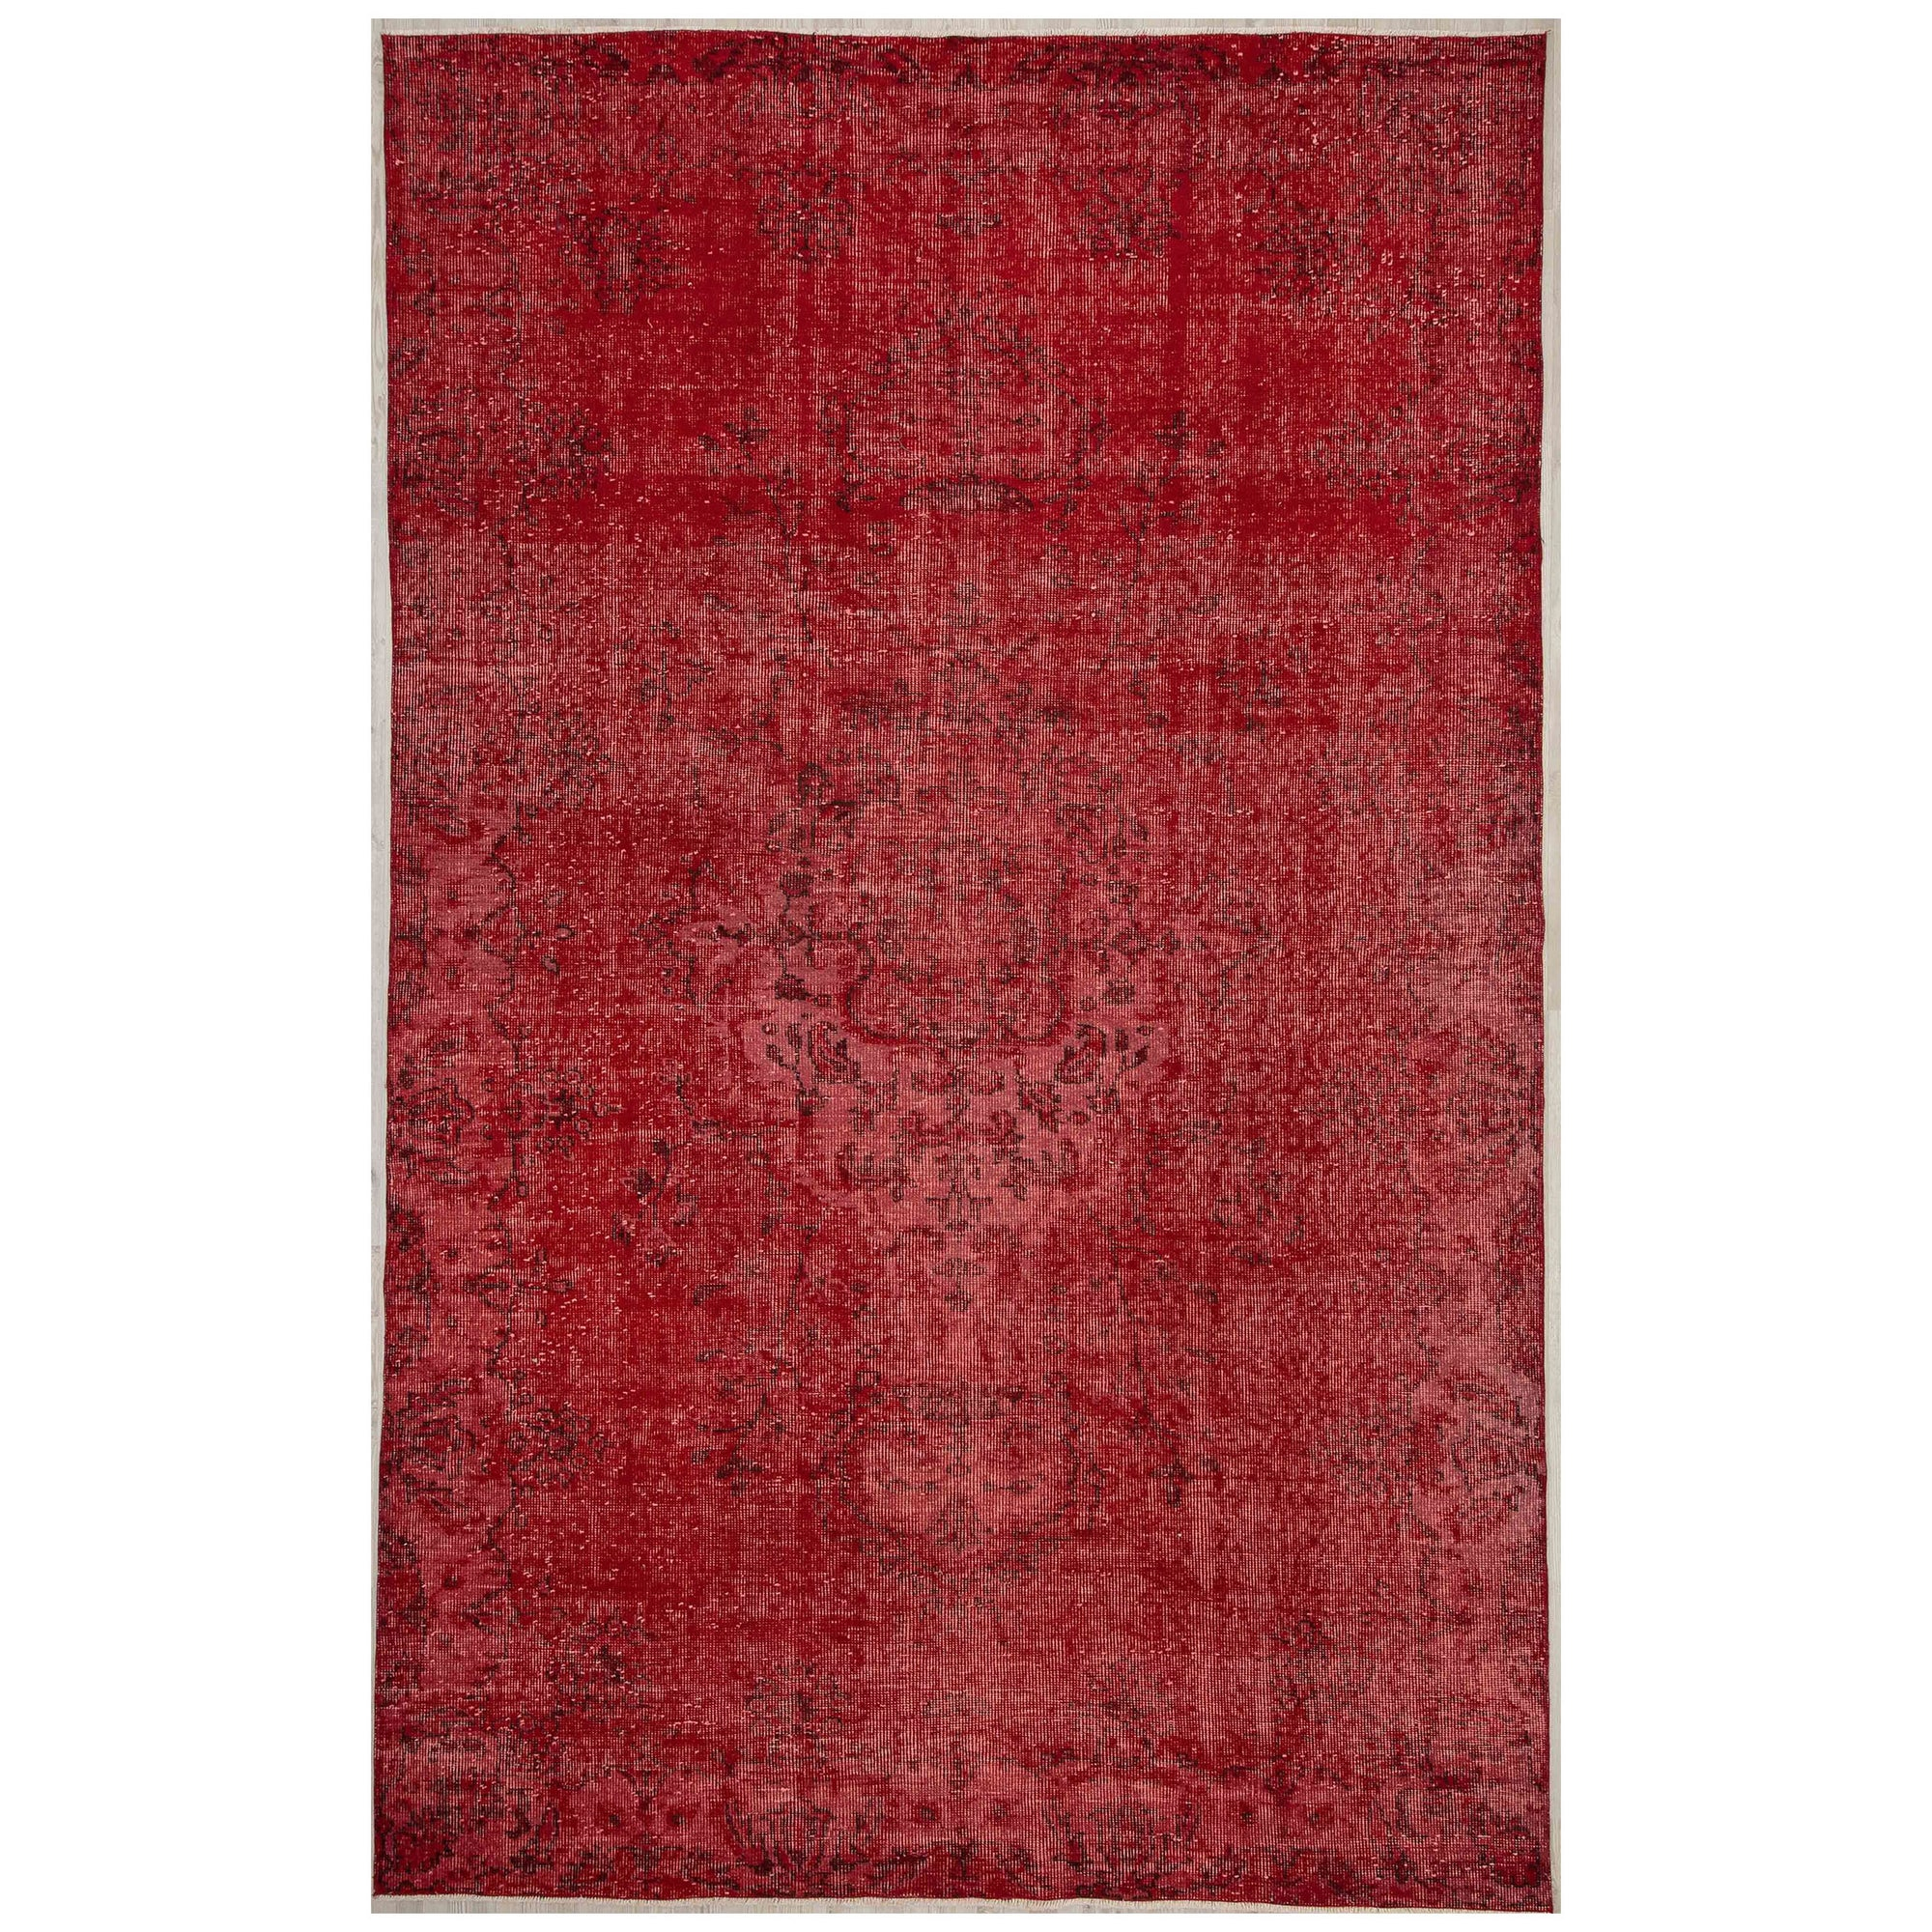 176 X 283 Anatolian Hand Knotted Carpet Vintage Style 60N2558 - ebarza